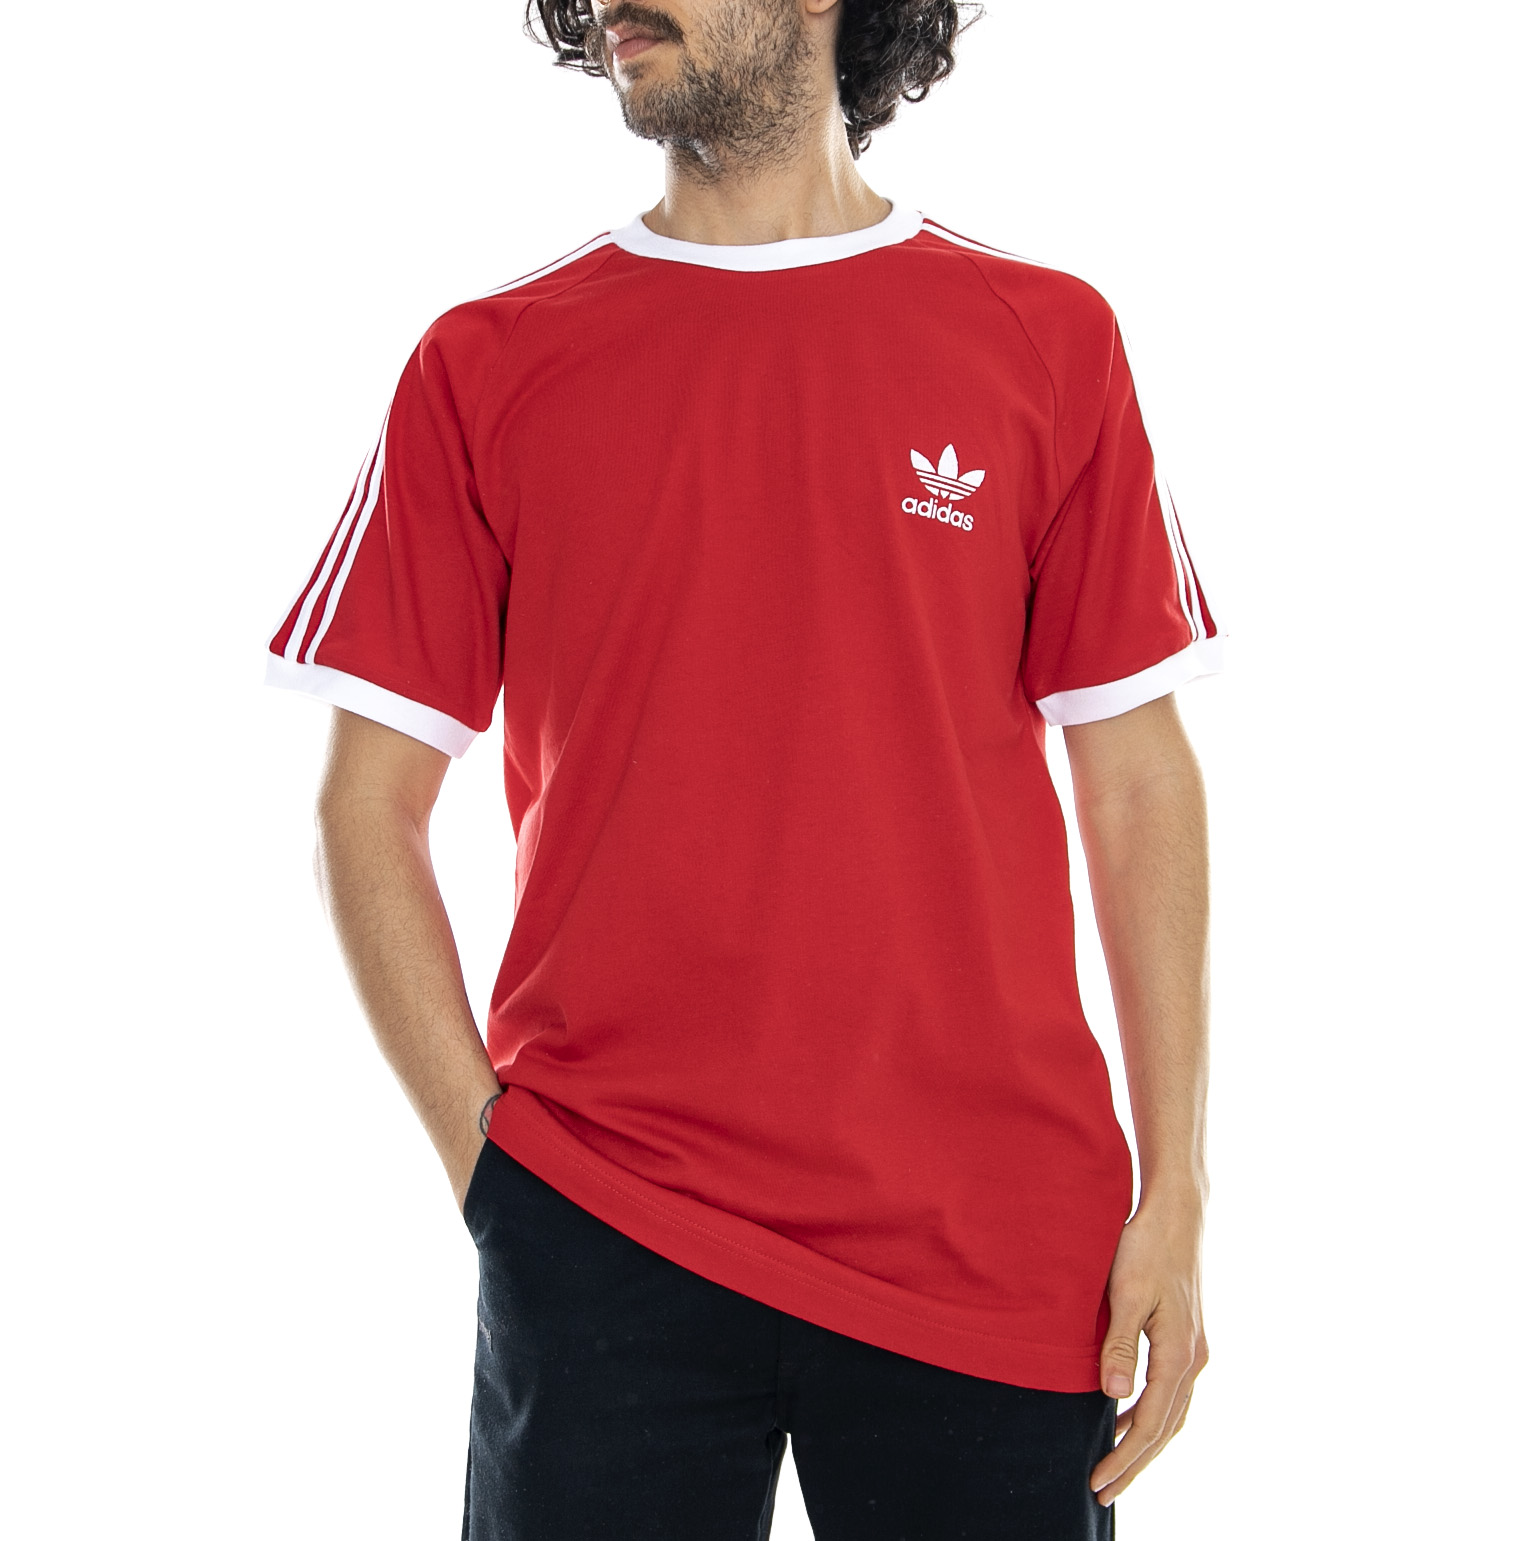 2e9449b7 Details about Adidas 3-Stripes Tee Red - T-shirt Crew-neck Man Red